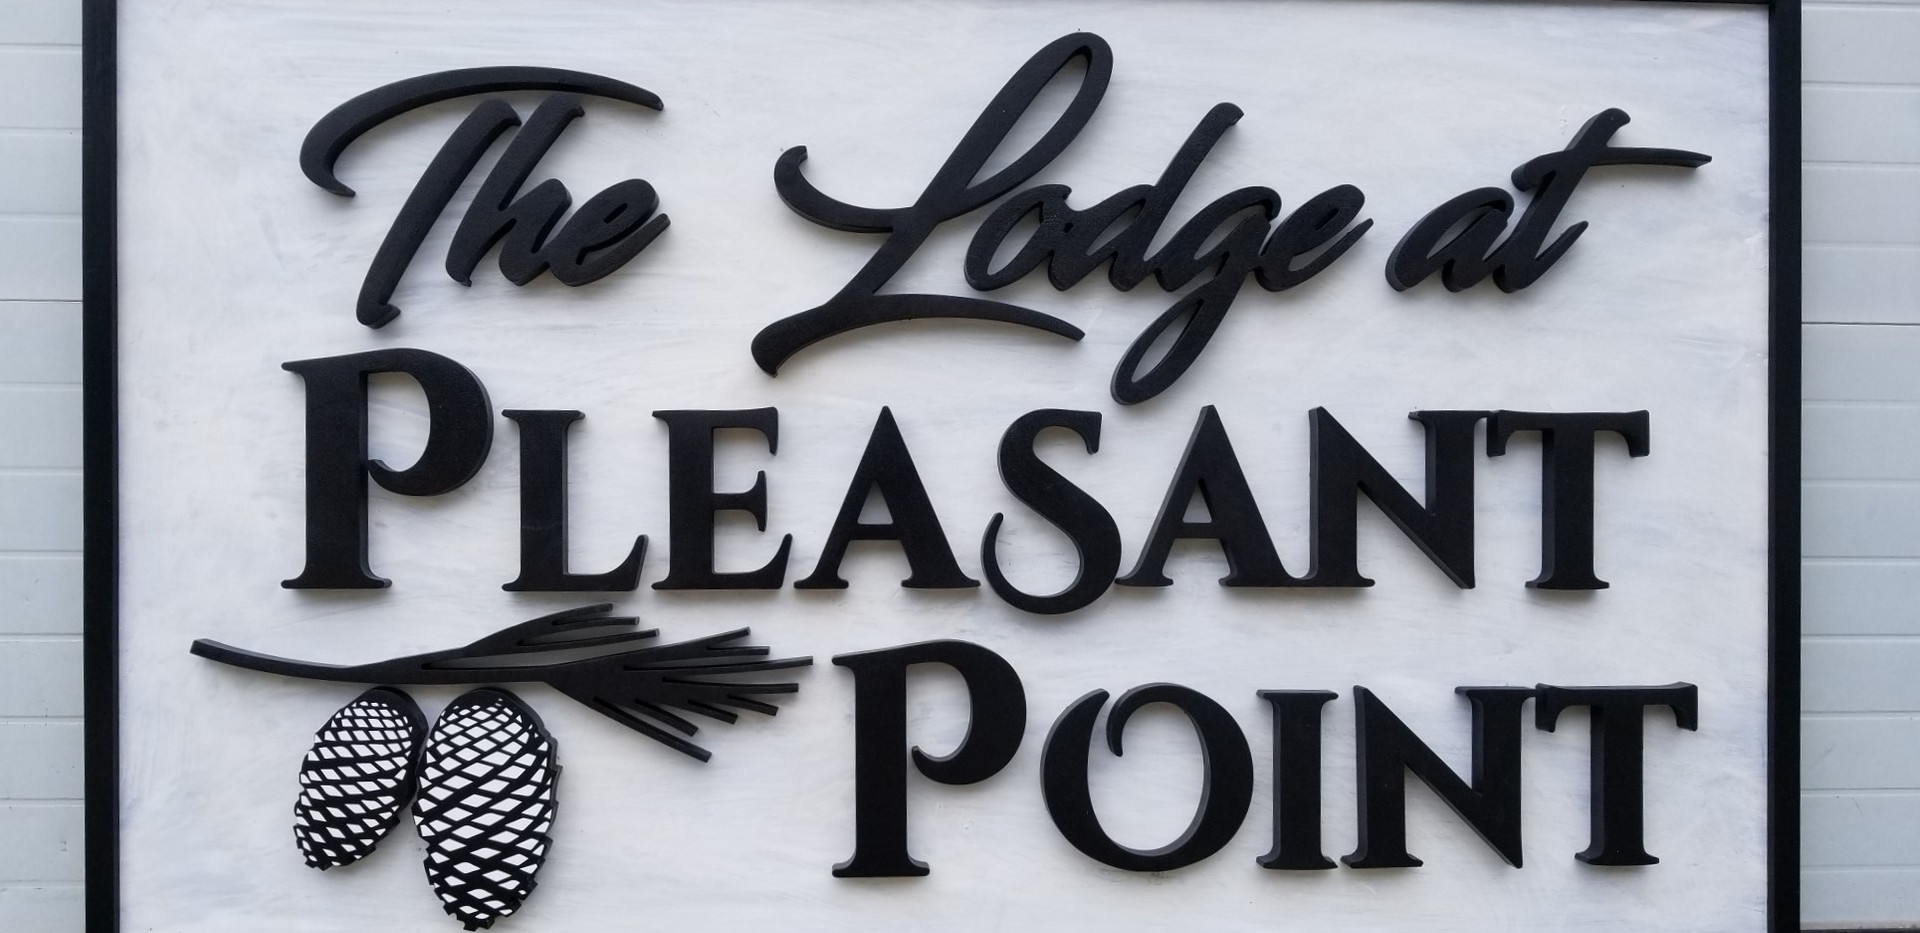 Lodge at pleasant point main sign photot